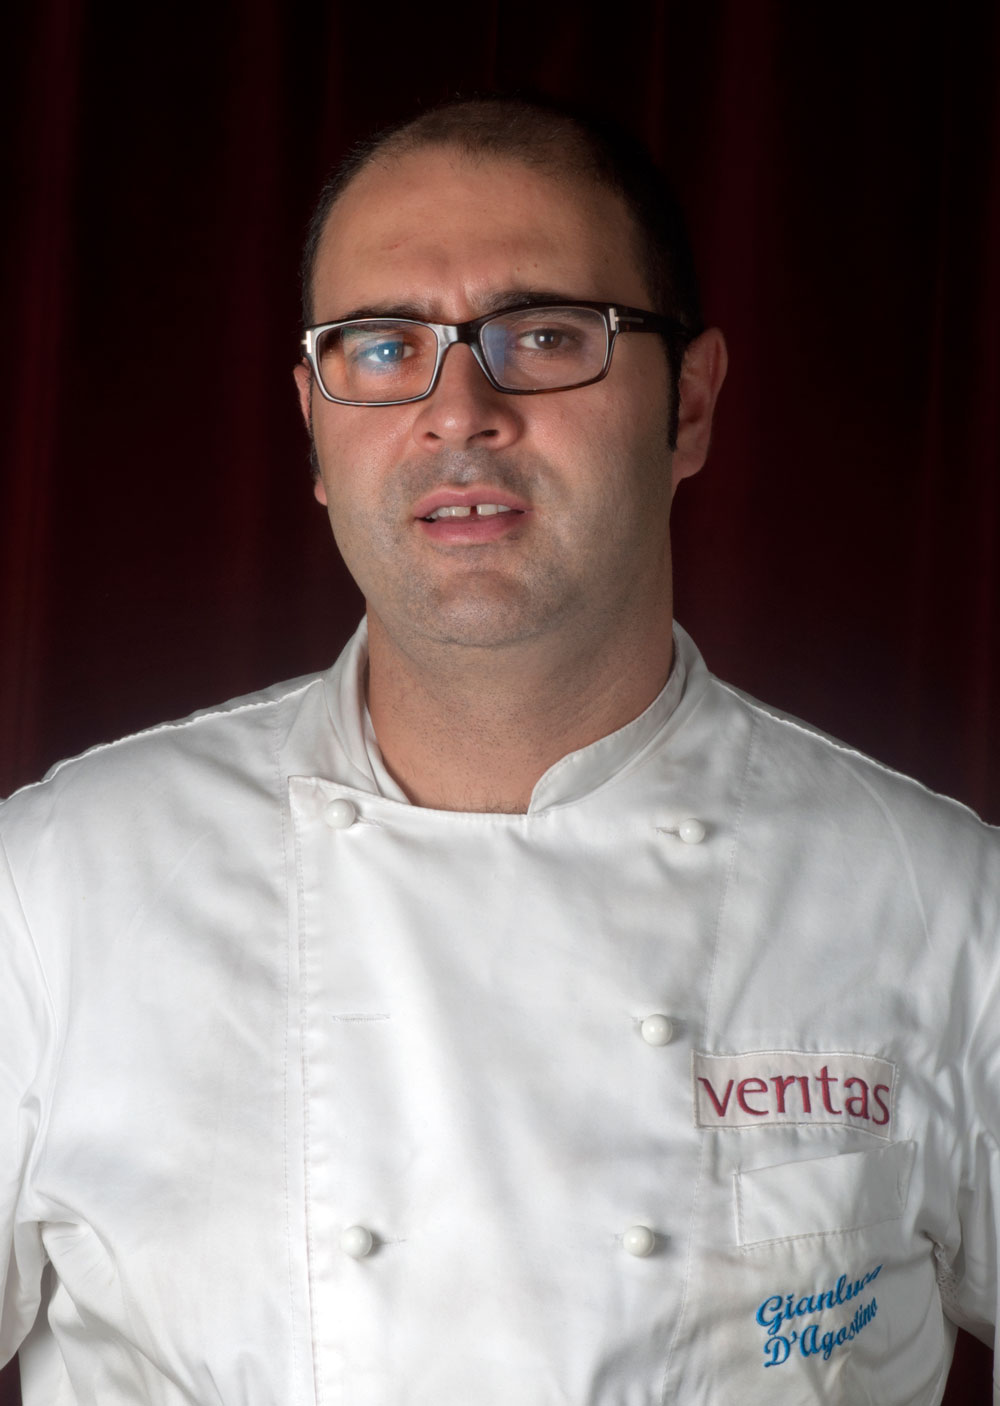 chef Gianluca D'Agostino